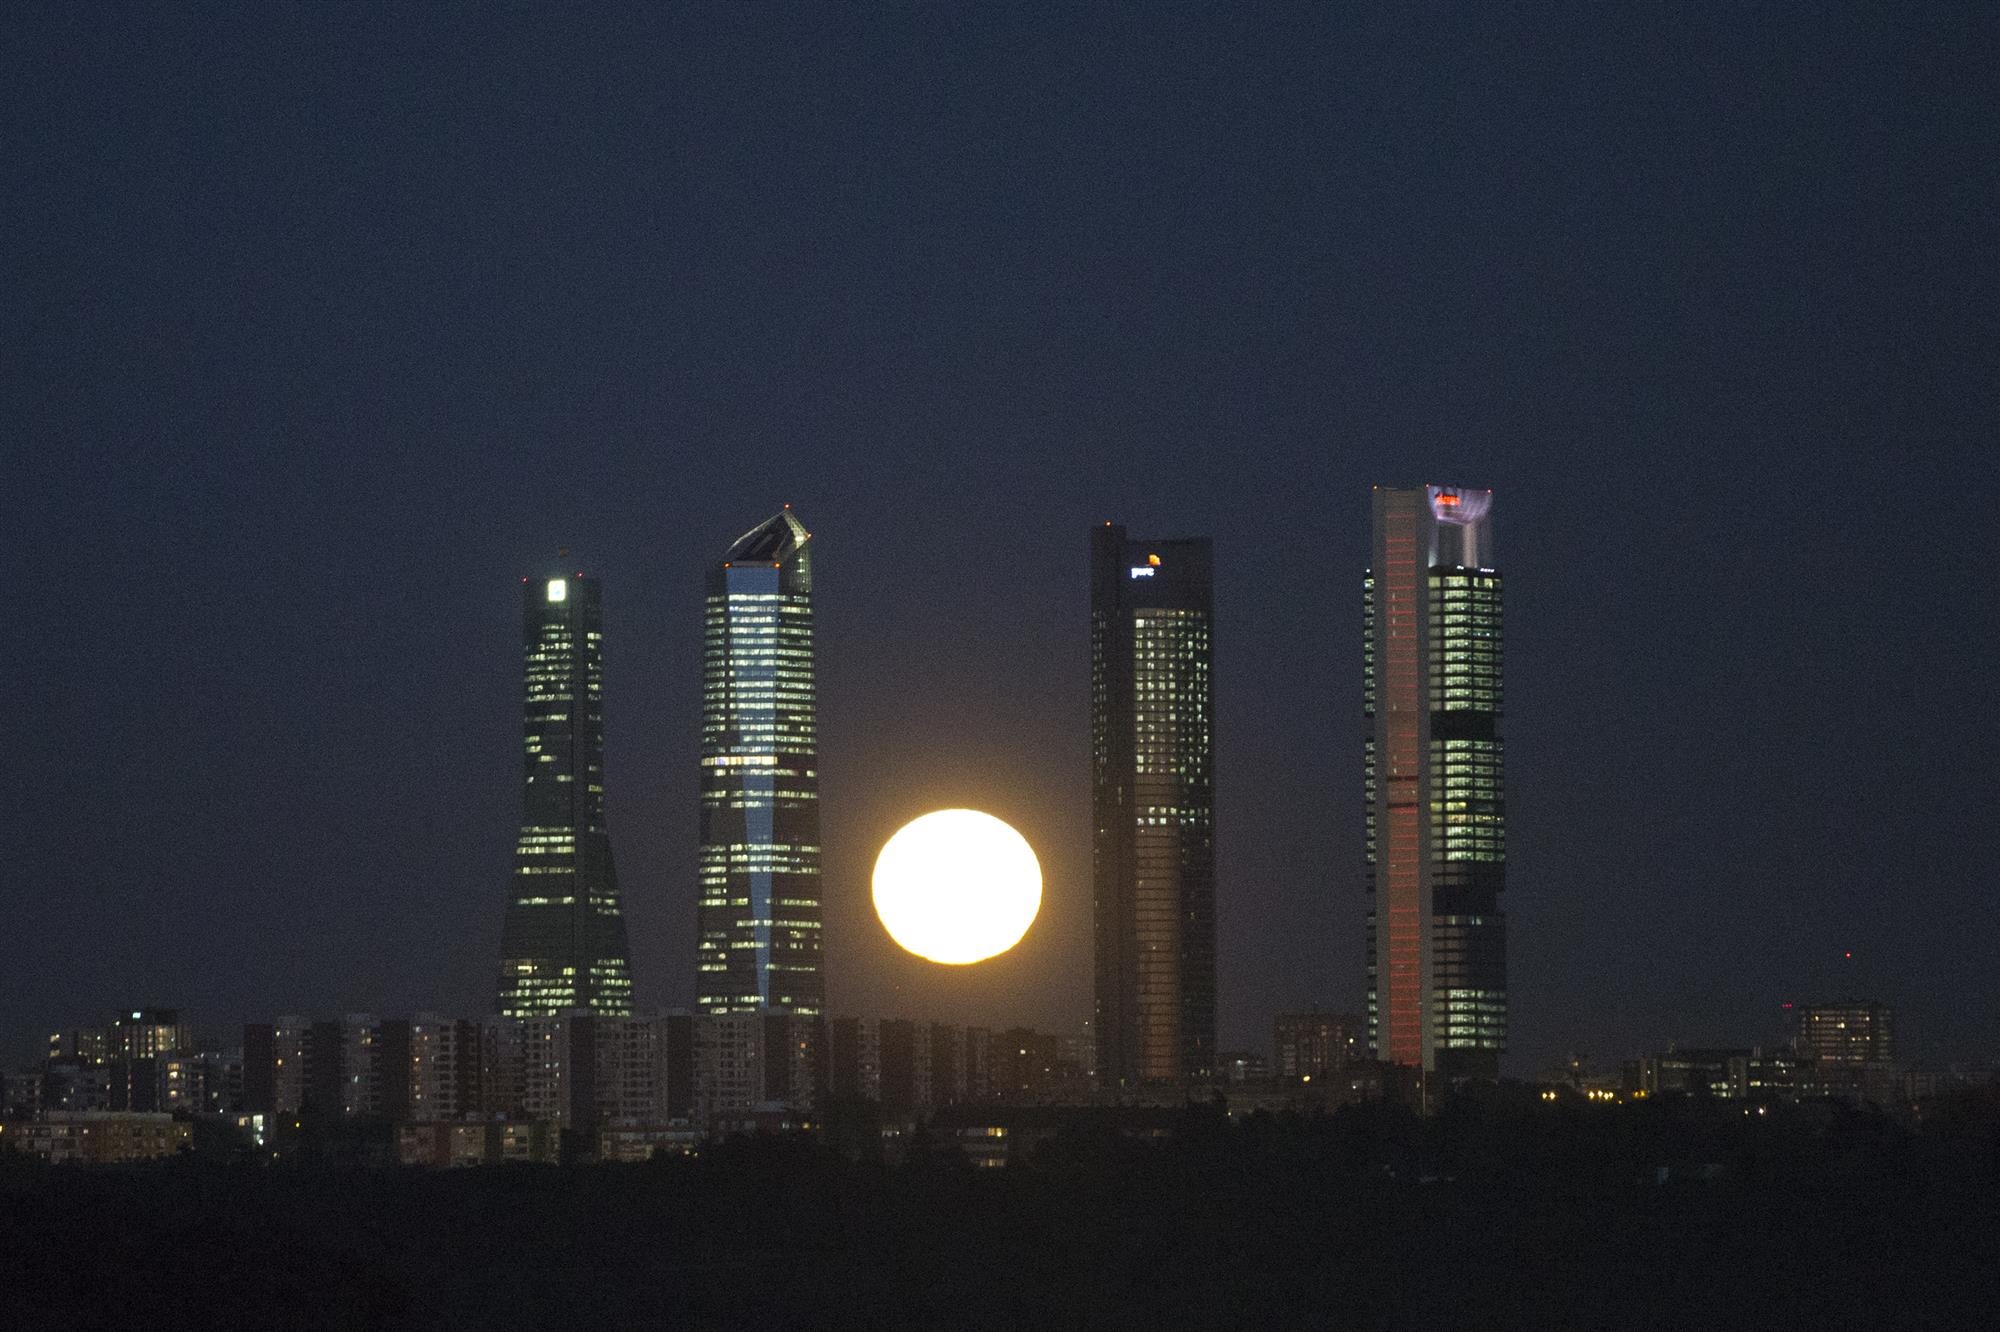 superlunamadrid. Madrid